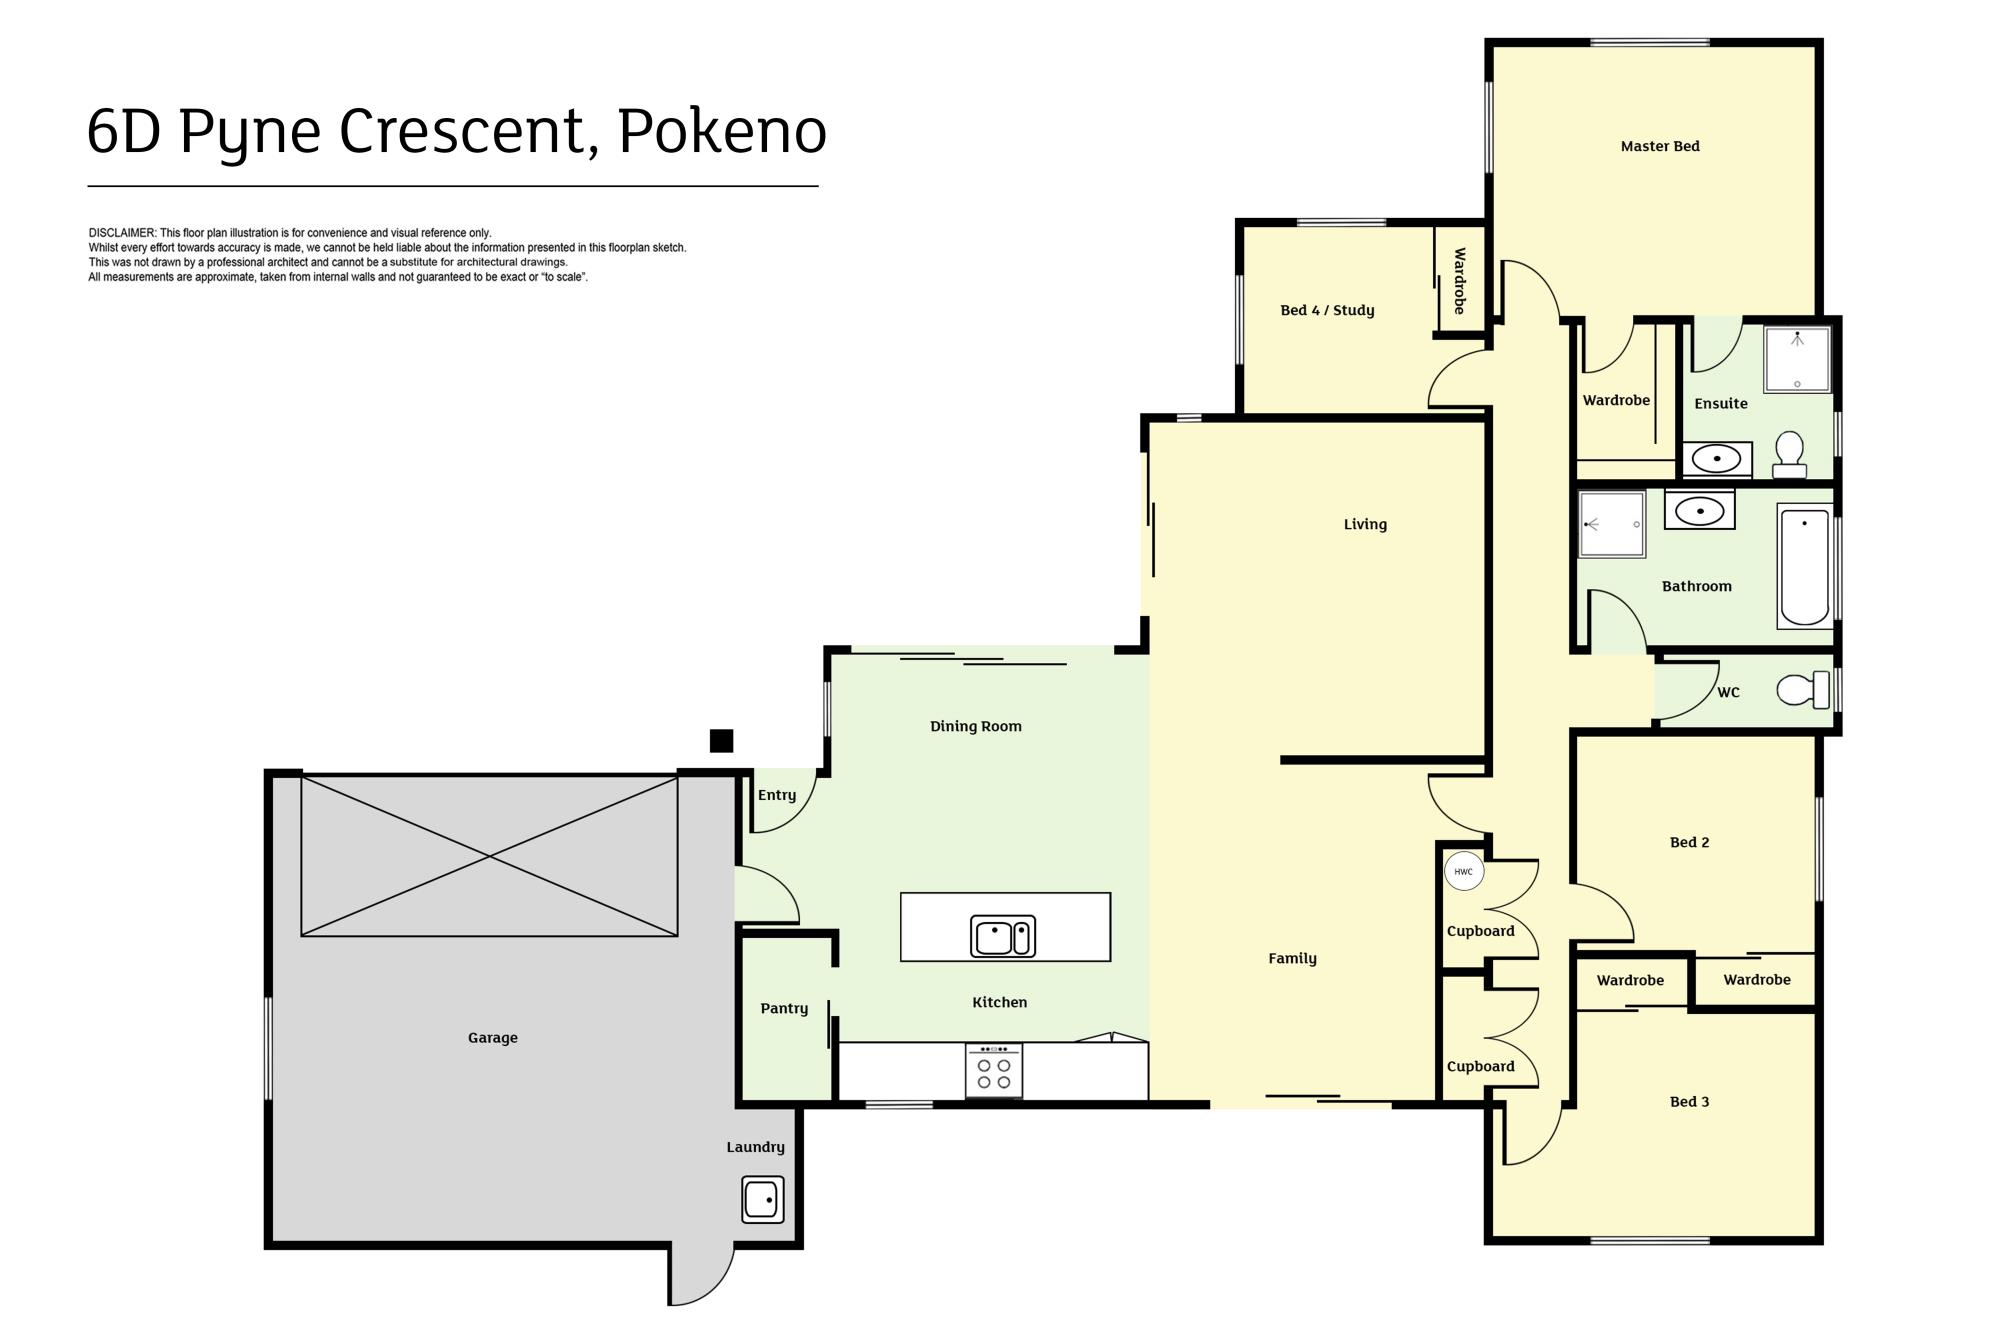 6D Pyne Crescent Pokenoproperty floorplan image